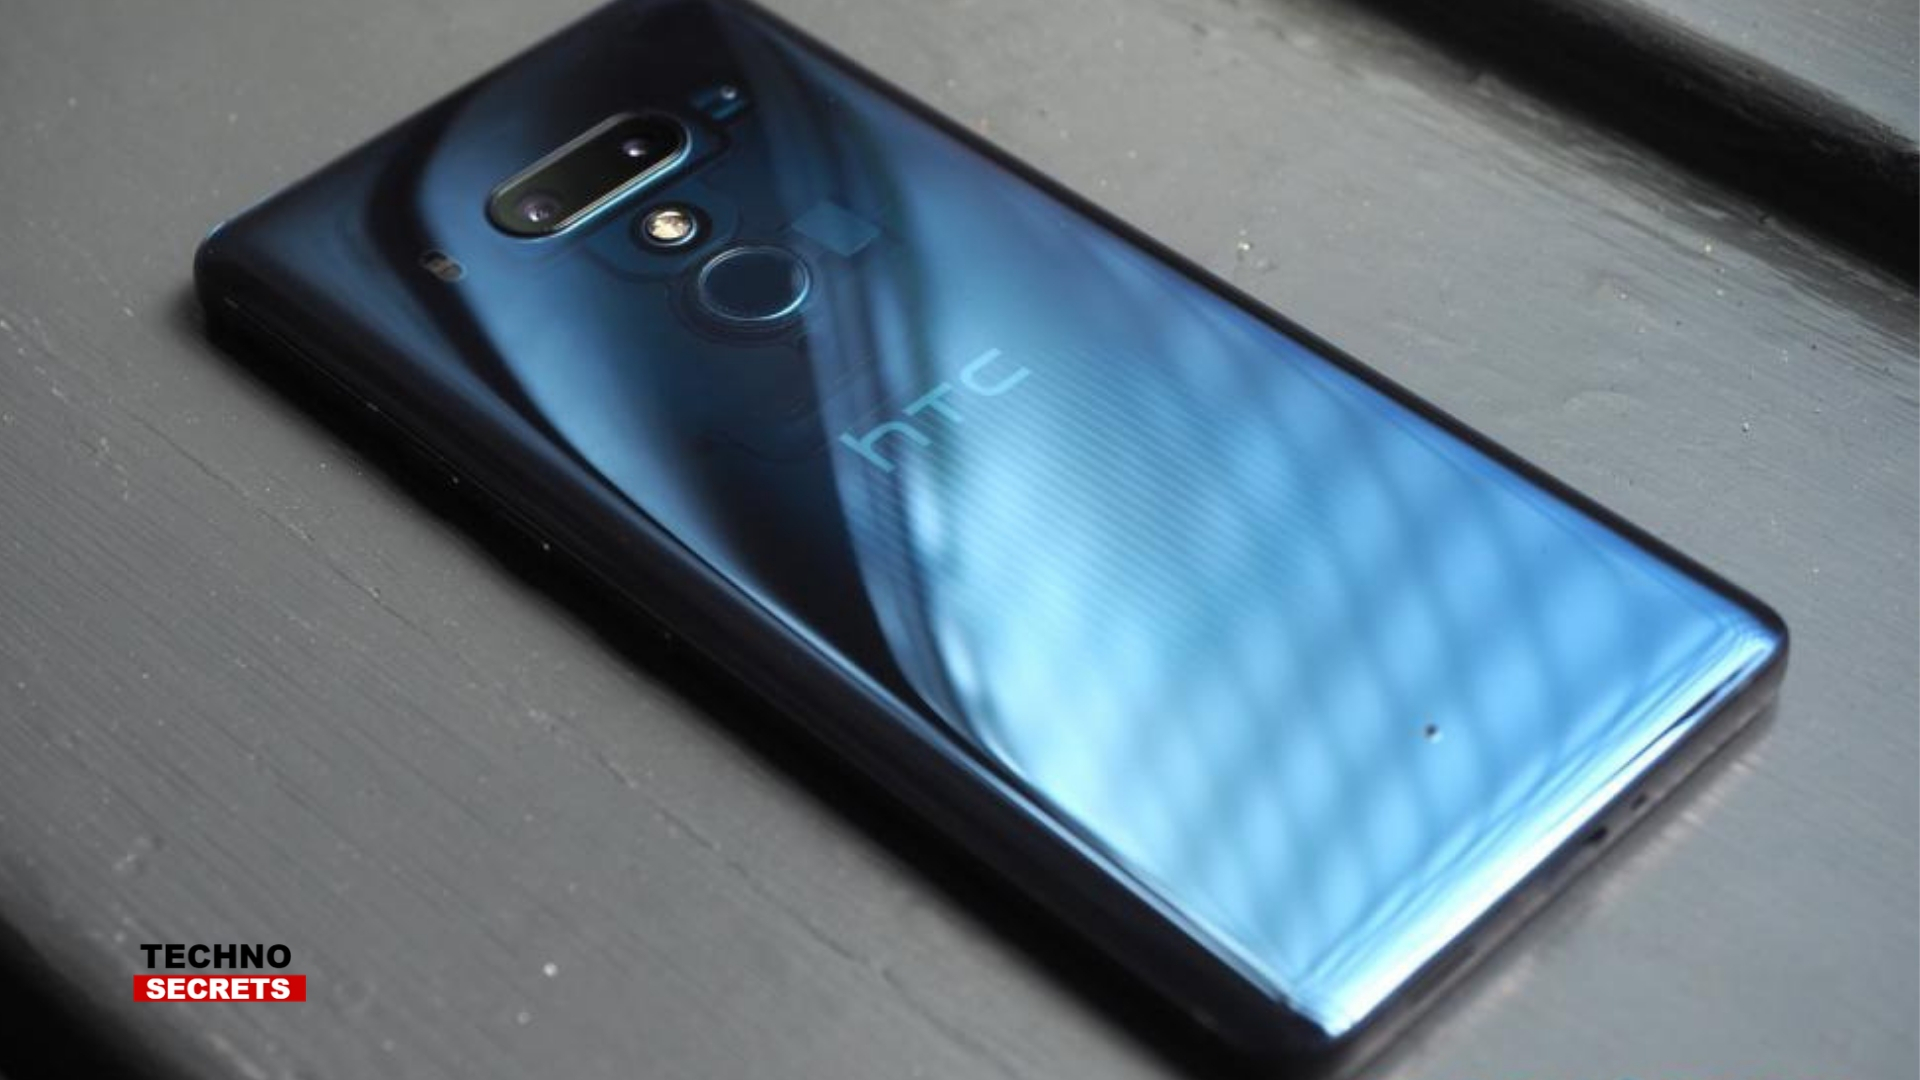 HTC Mid-range Smartphone with Snapdragon 710 SoC Spotted on Geekbench